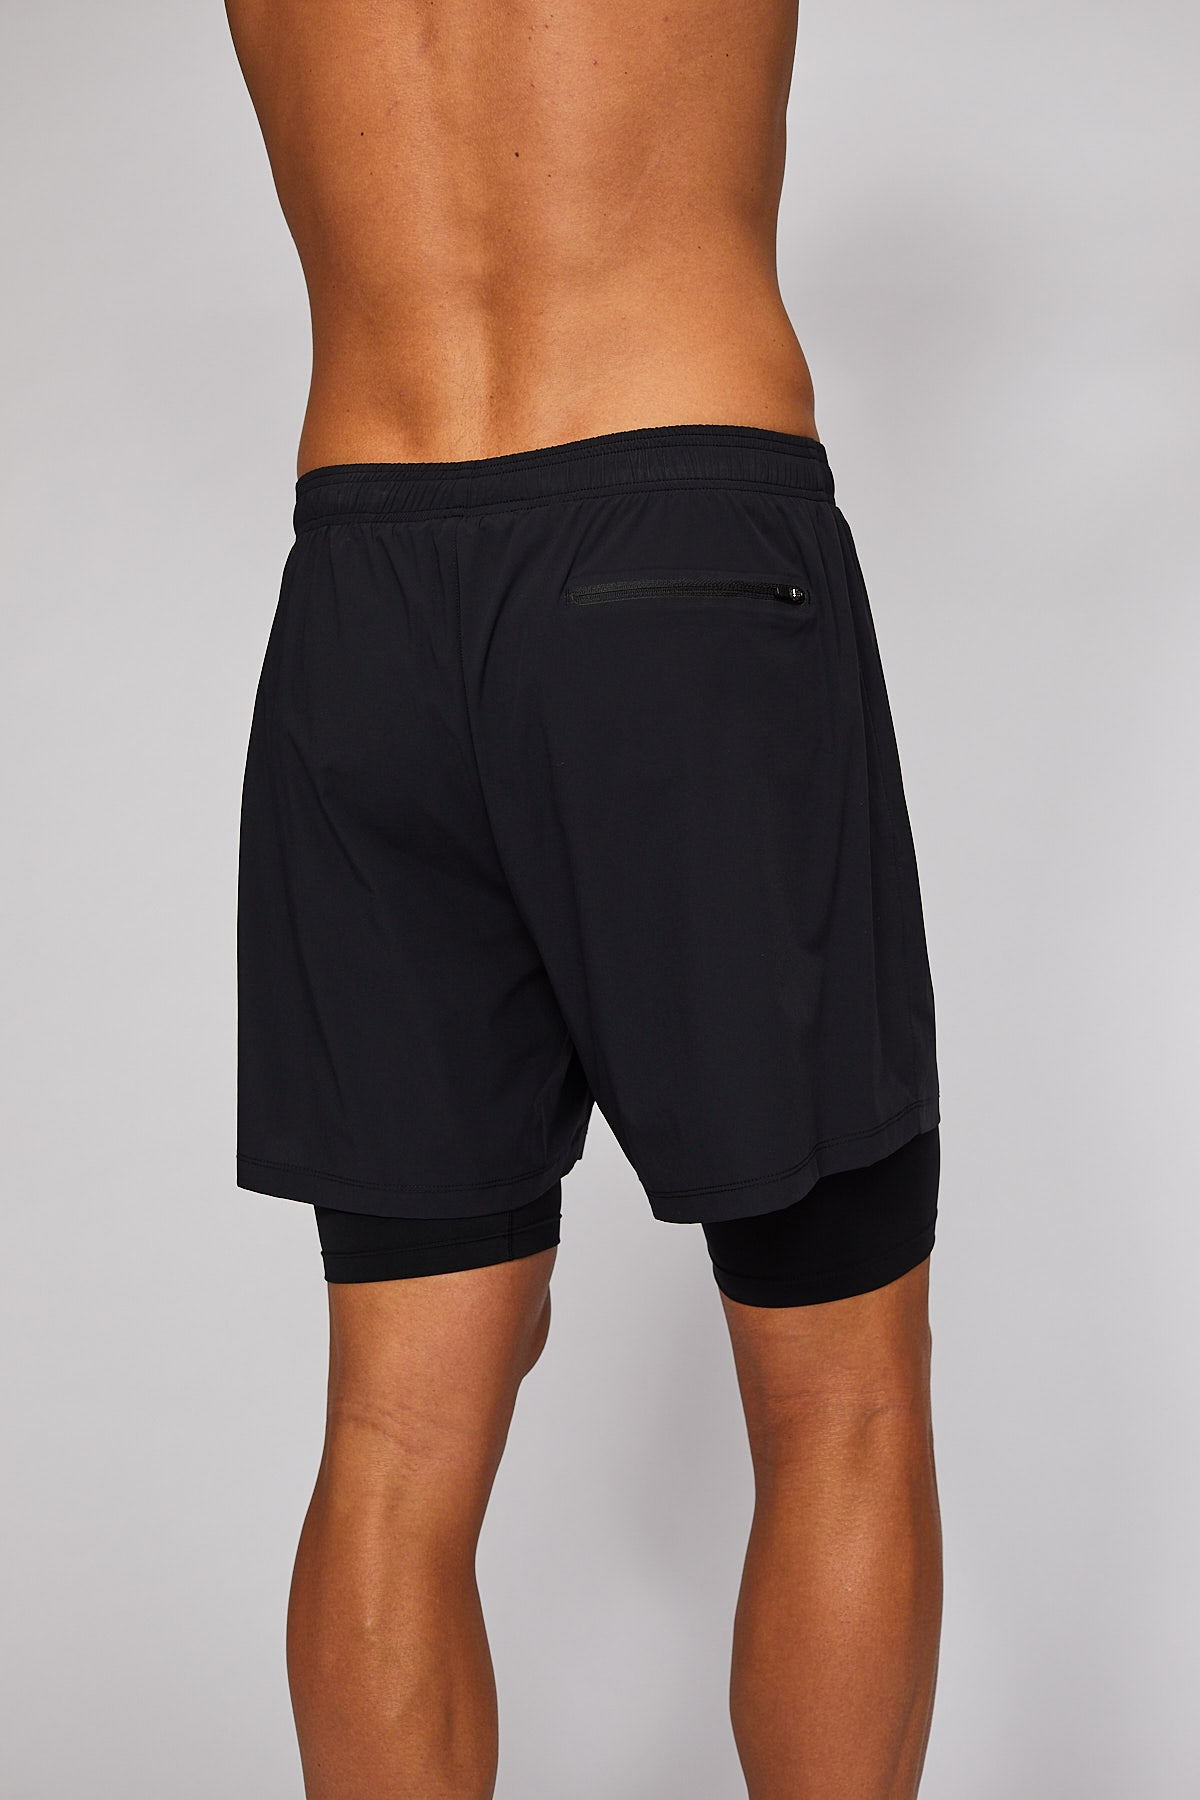 "PERFORMANCE RUN 5"" SHORTS WITH COMPRESSION TIGHT SHORT - MENS"